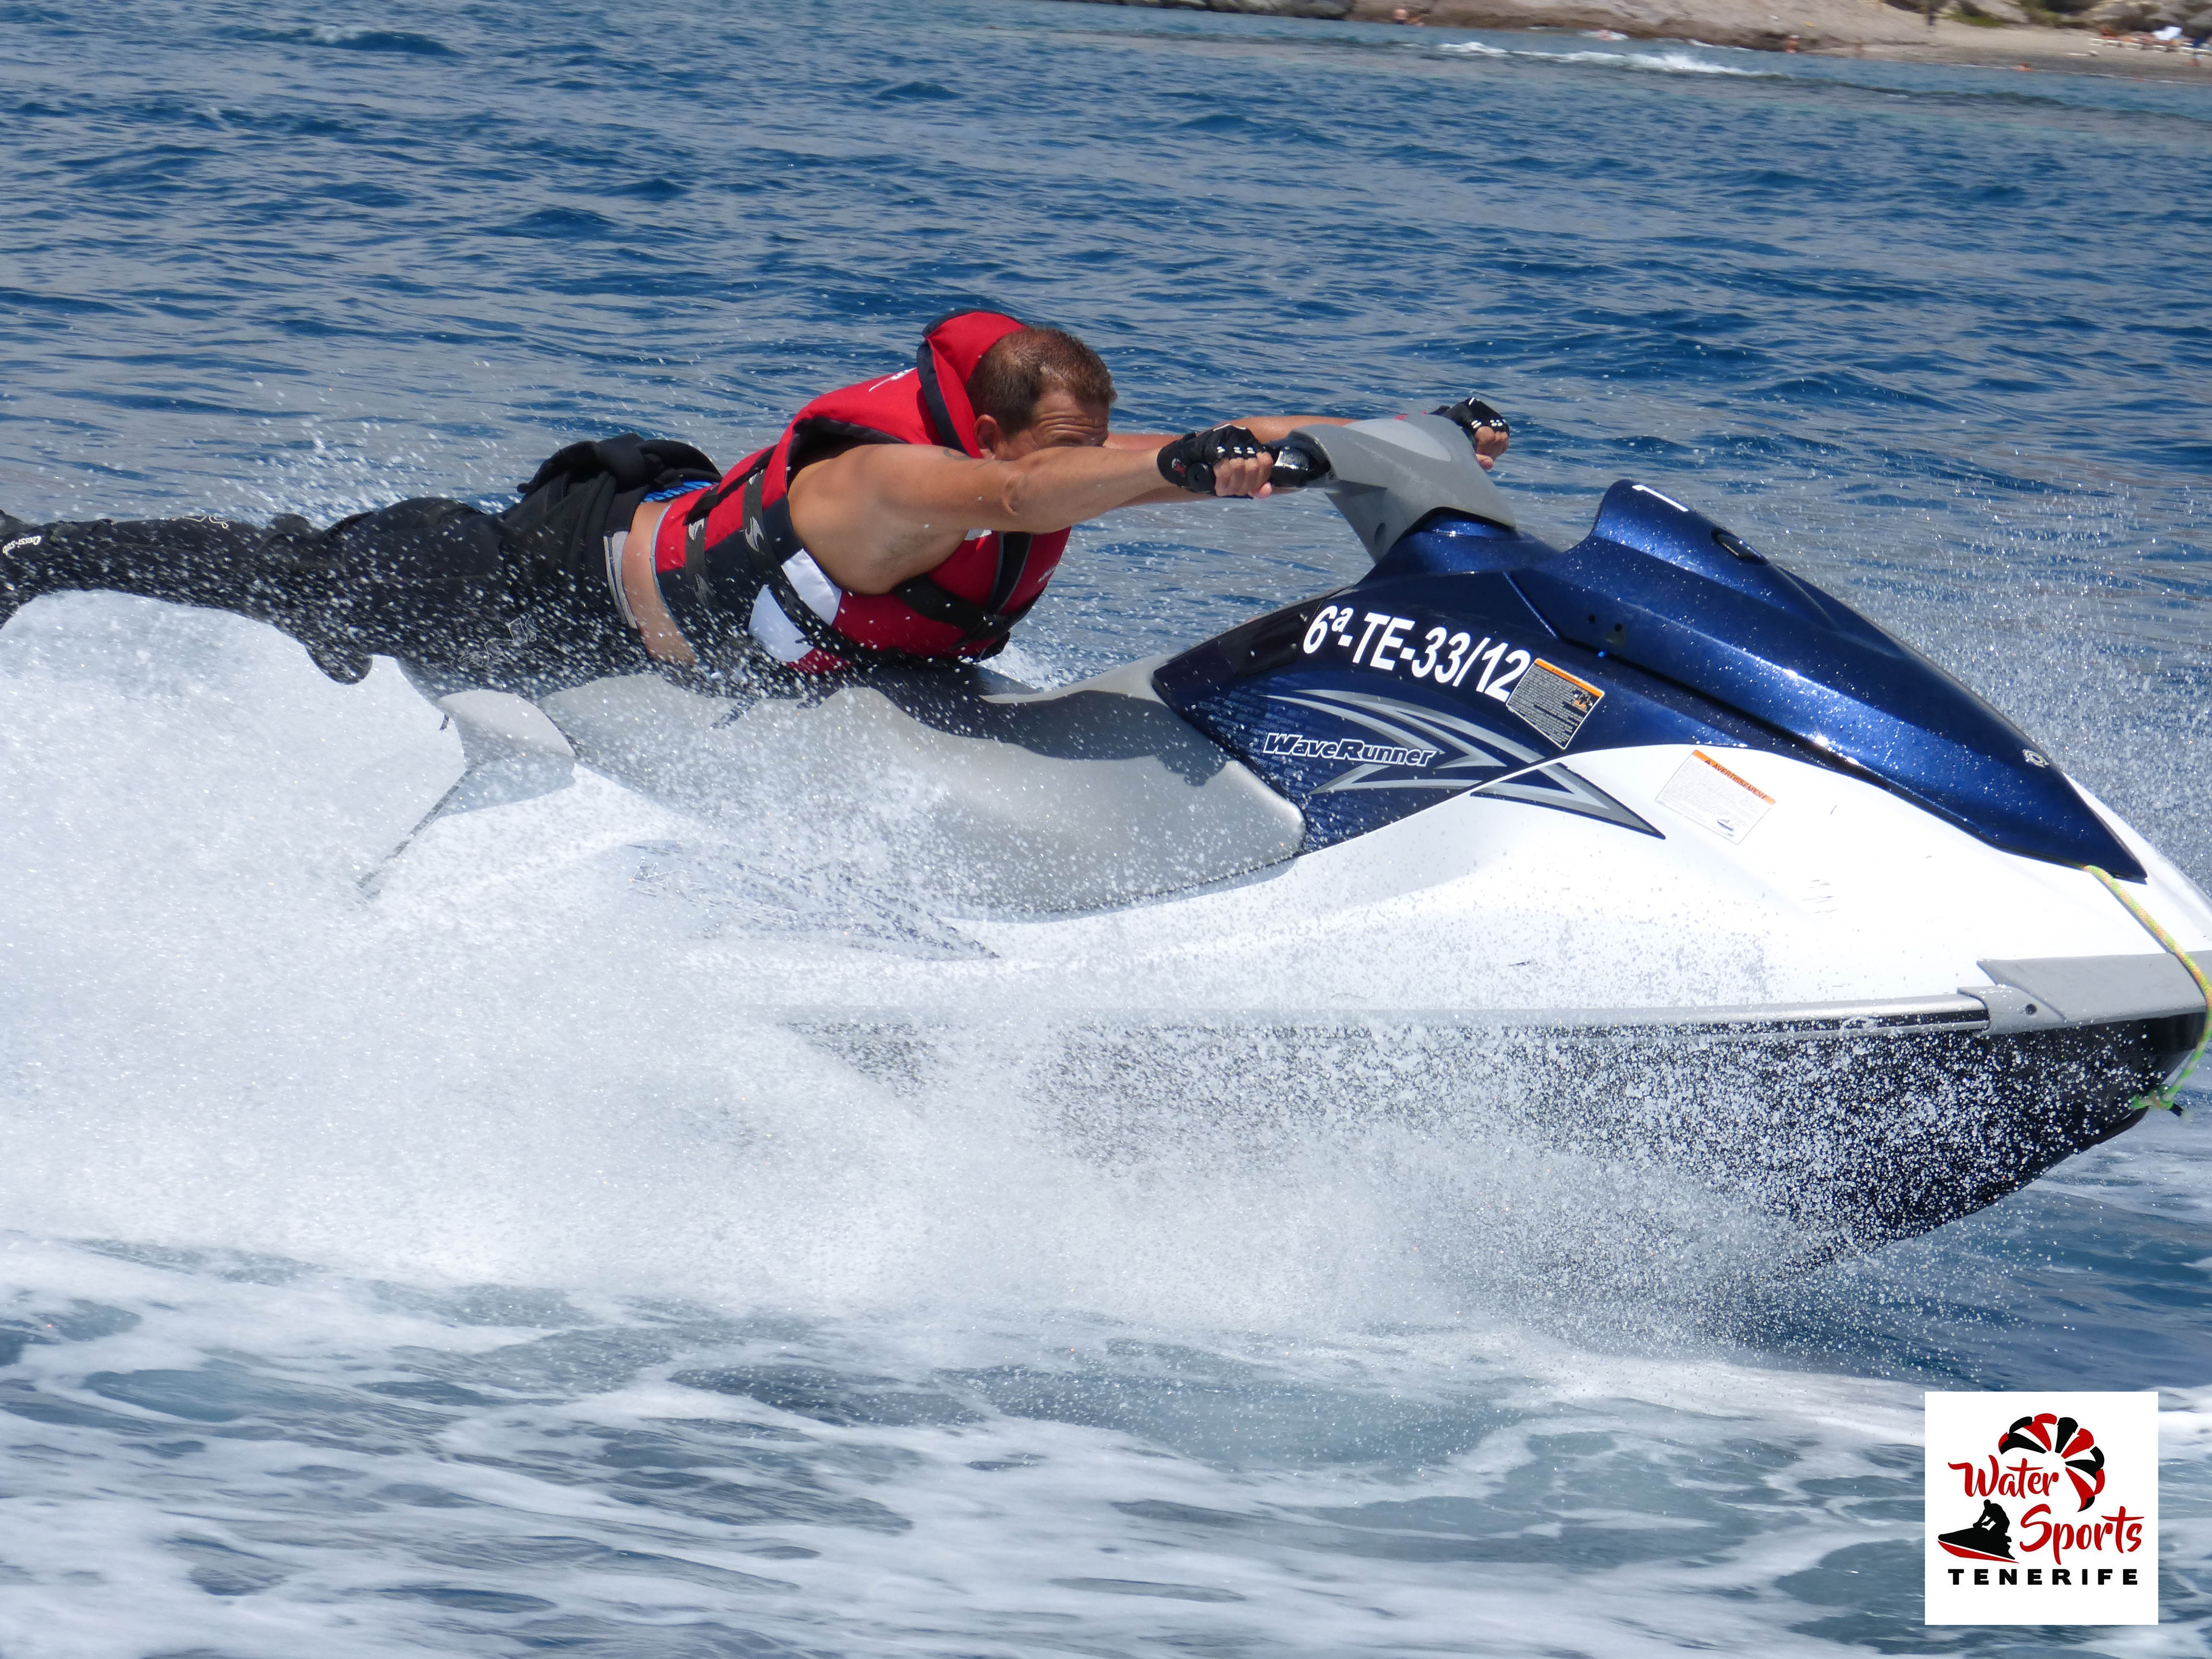 jet ski safari rent jet ski in canary islands south tenerife los cristianos las americas